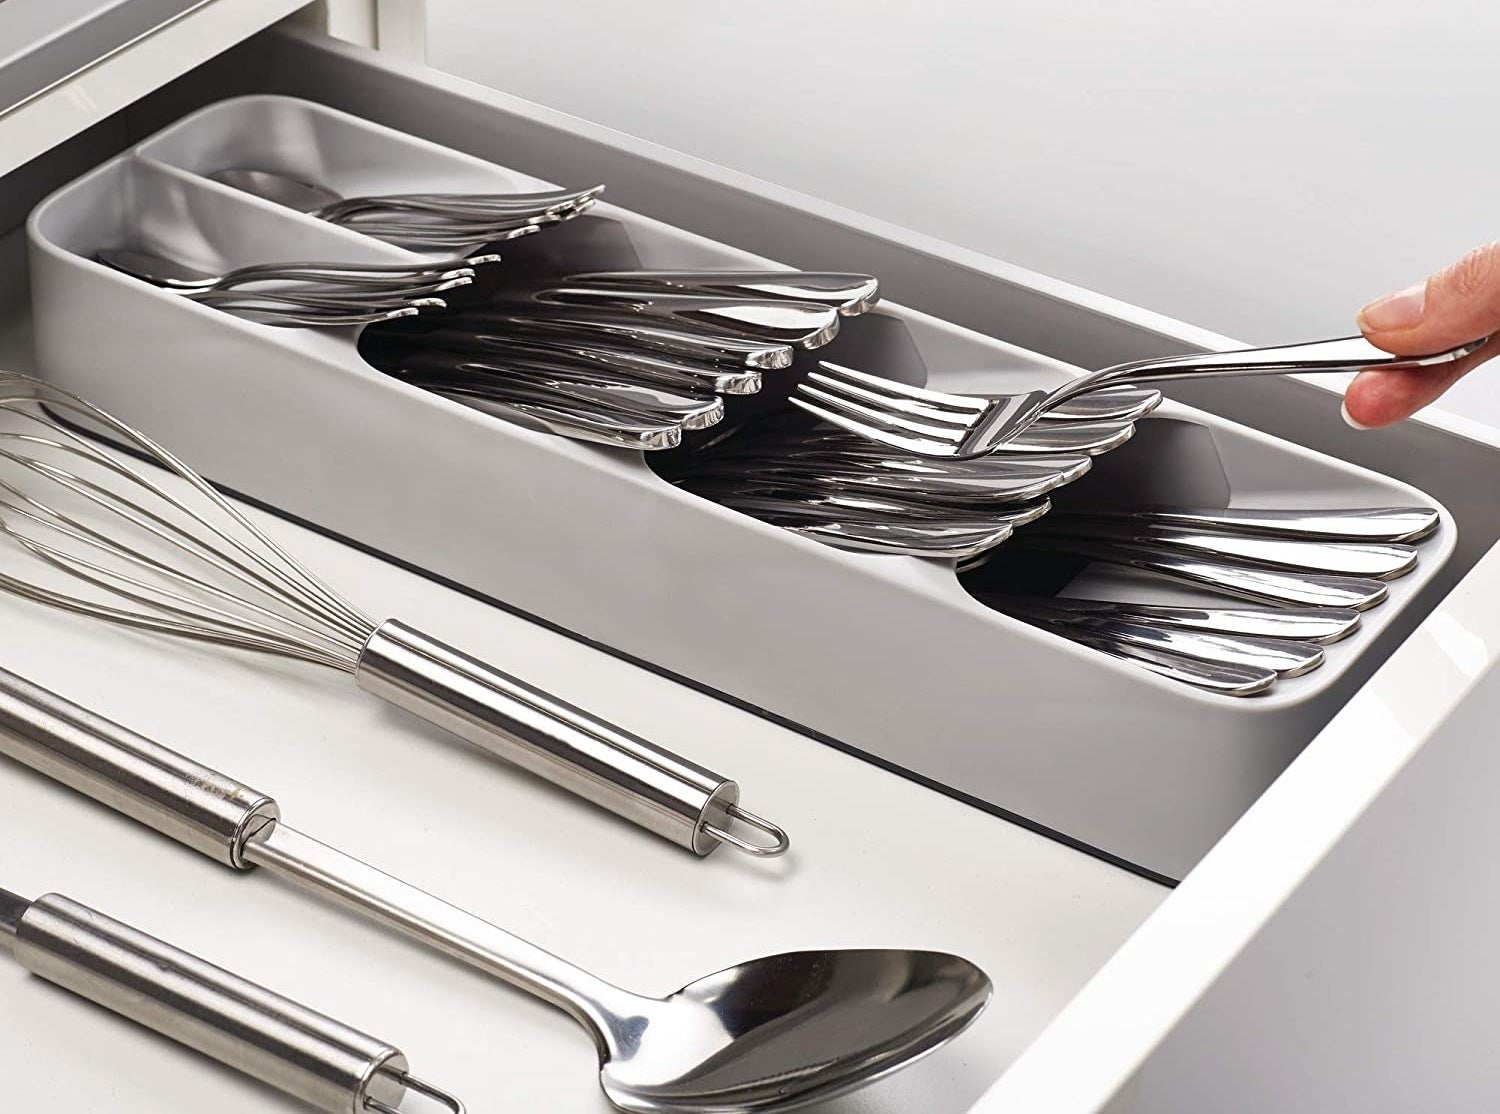 Model's fingers removing a fork from a neat stack of utensils in a gray plastic utensil organizer with five sections for knives, spoons, and more